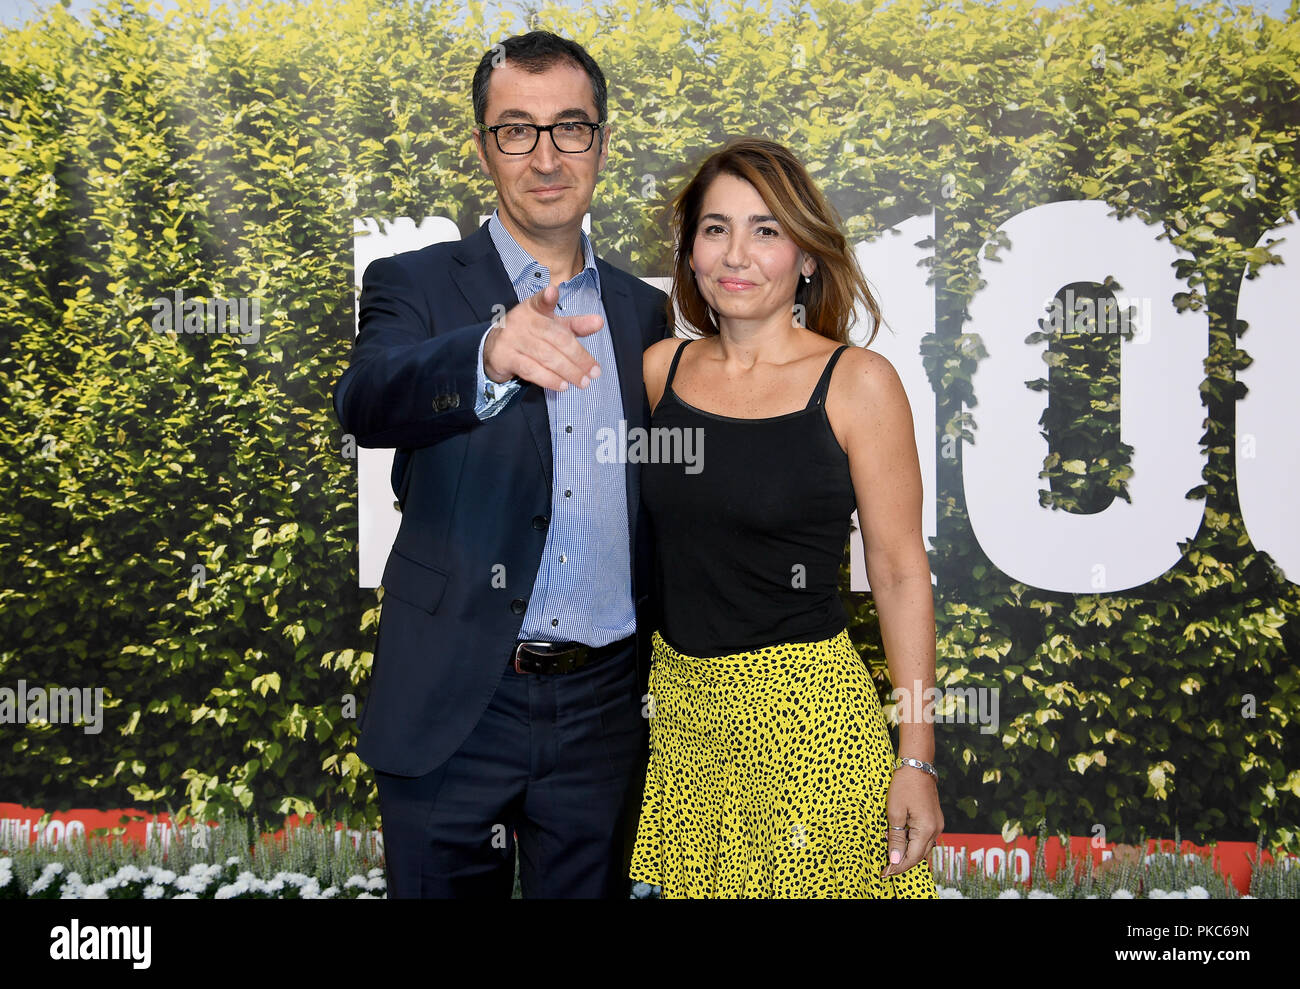 12 September 2018, Berlin: 12 September 2018, Germany, Berlin: Cem Ozdemir, federal chairman of Alliance 90/The Greens, and his wife, journalist Pia Maria Castro, who comes from Argentina, come to the summer party 'BILD100'. Photo: Britta Pedersen/dpa-Zentralbild/dpa - Stock Image